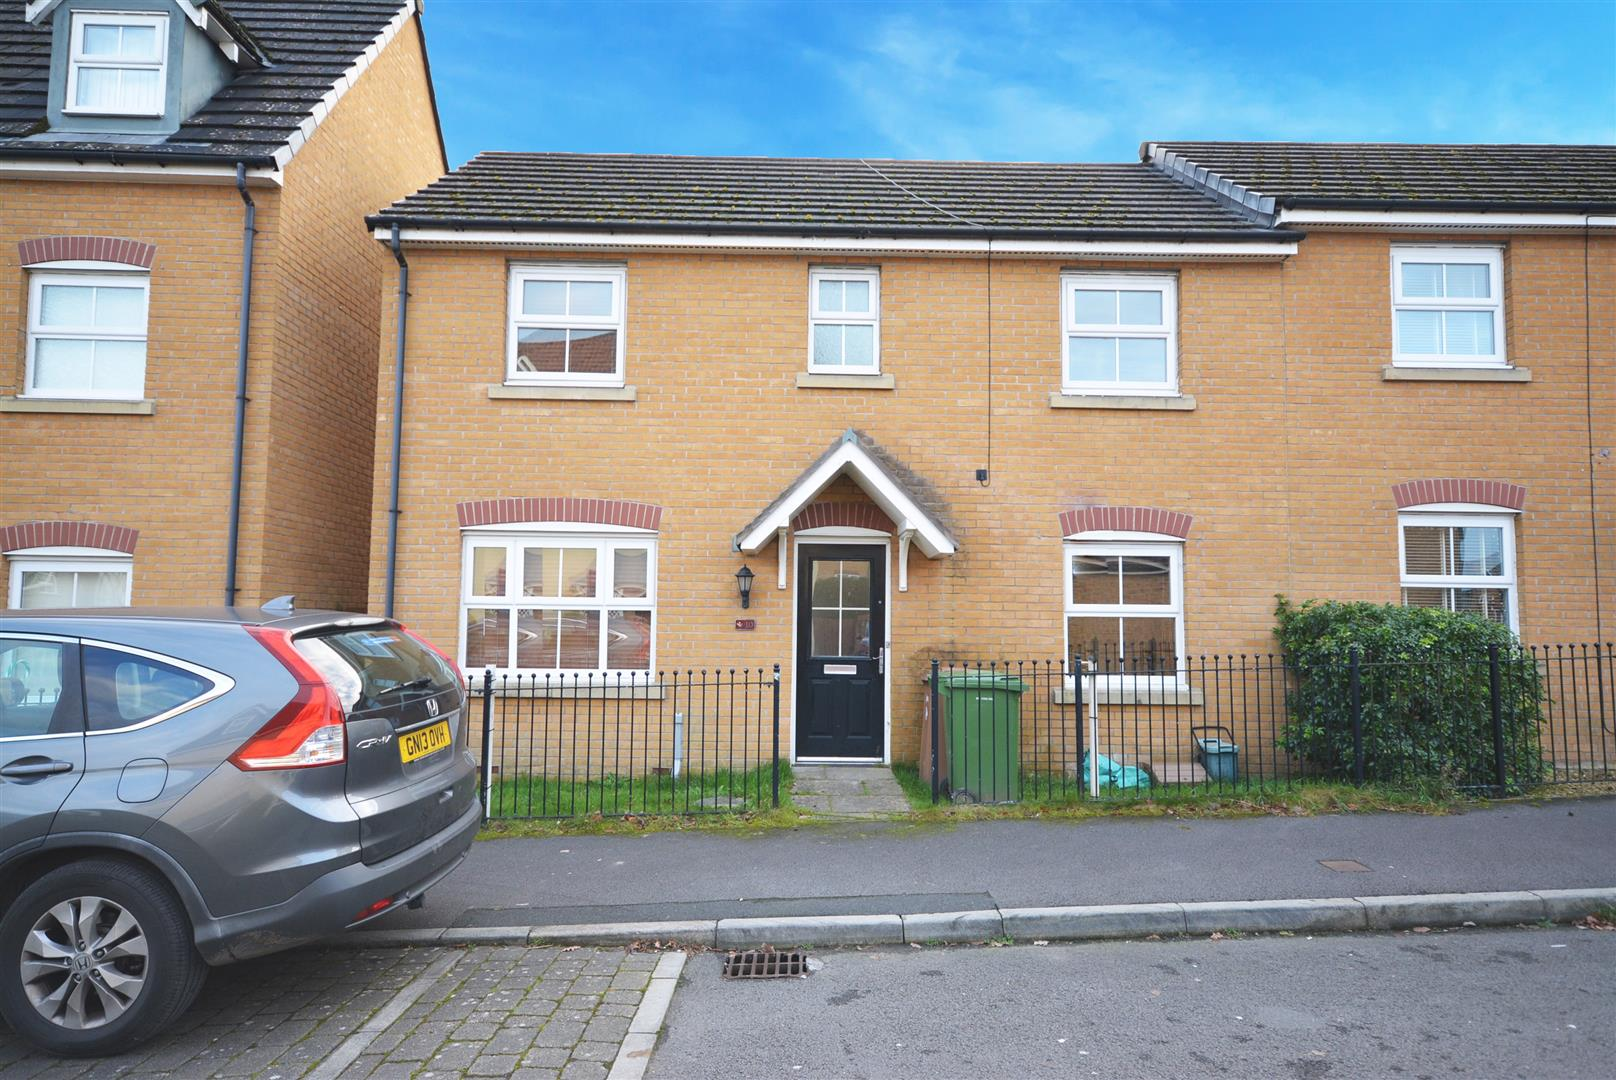 3 bed semi-detached house for sale in Red Kite Close, Hengoed, CF82